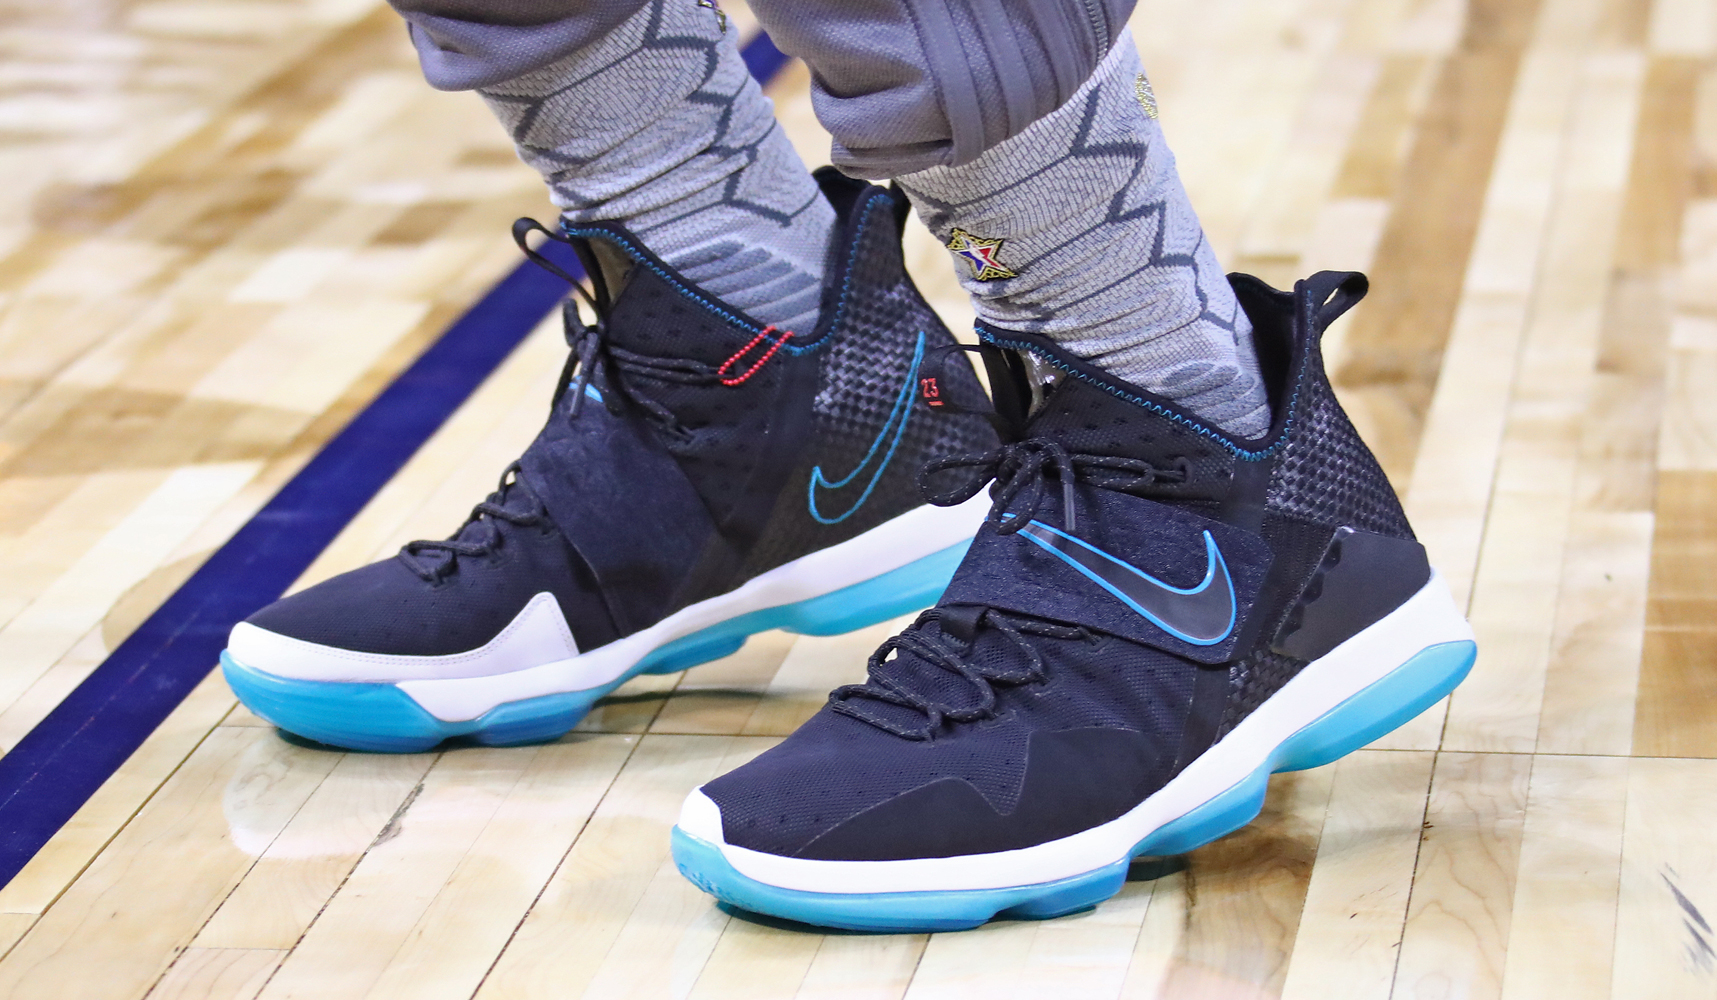 Worn by LeBron James at NBA All-Star practice